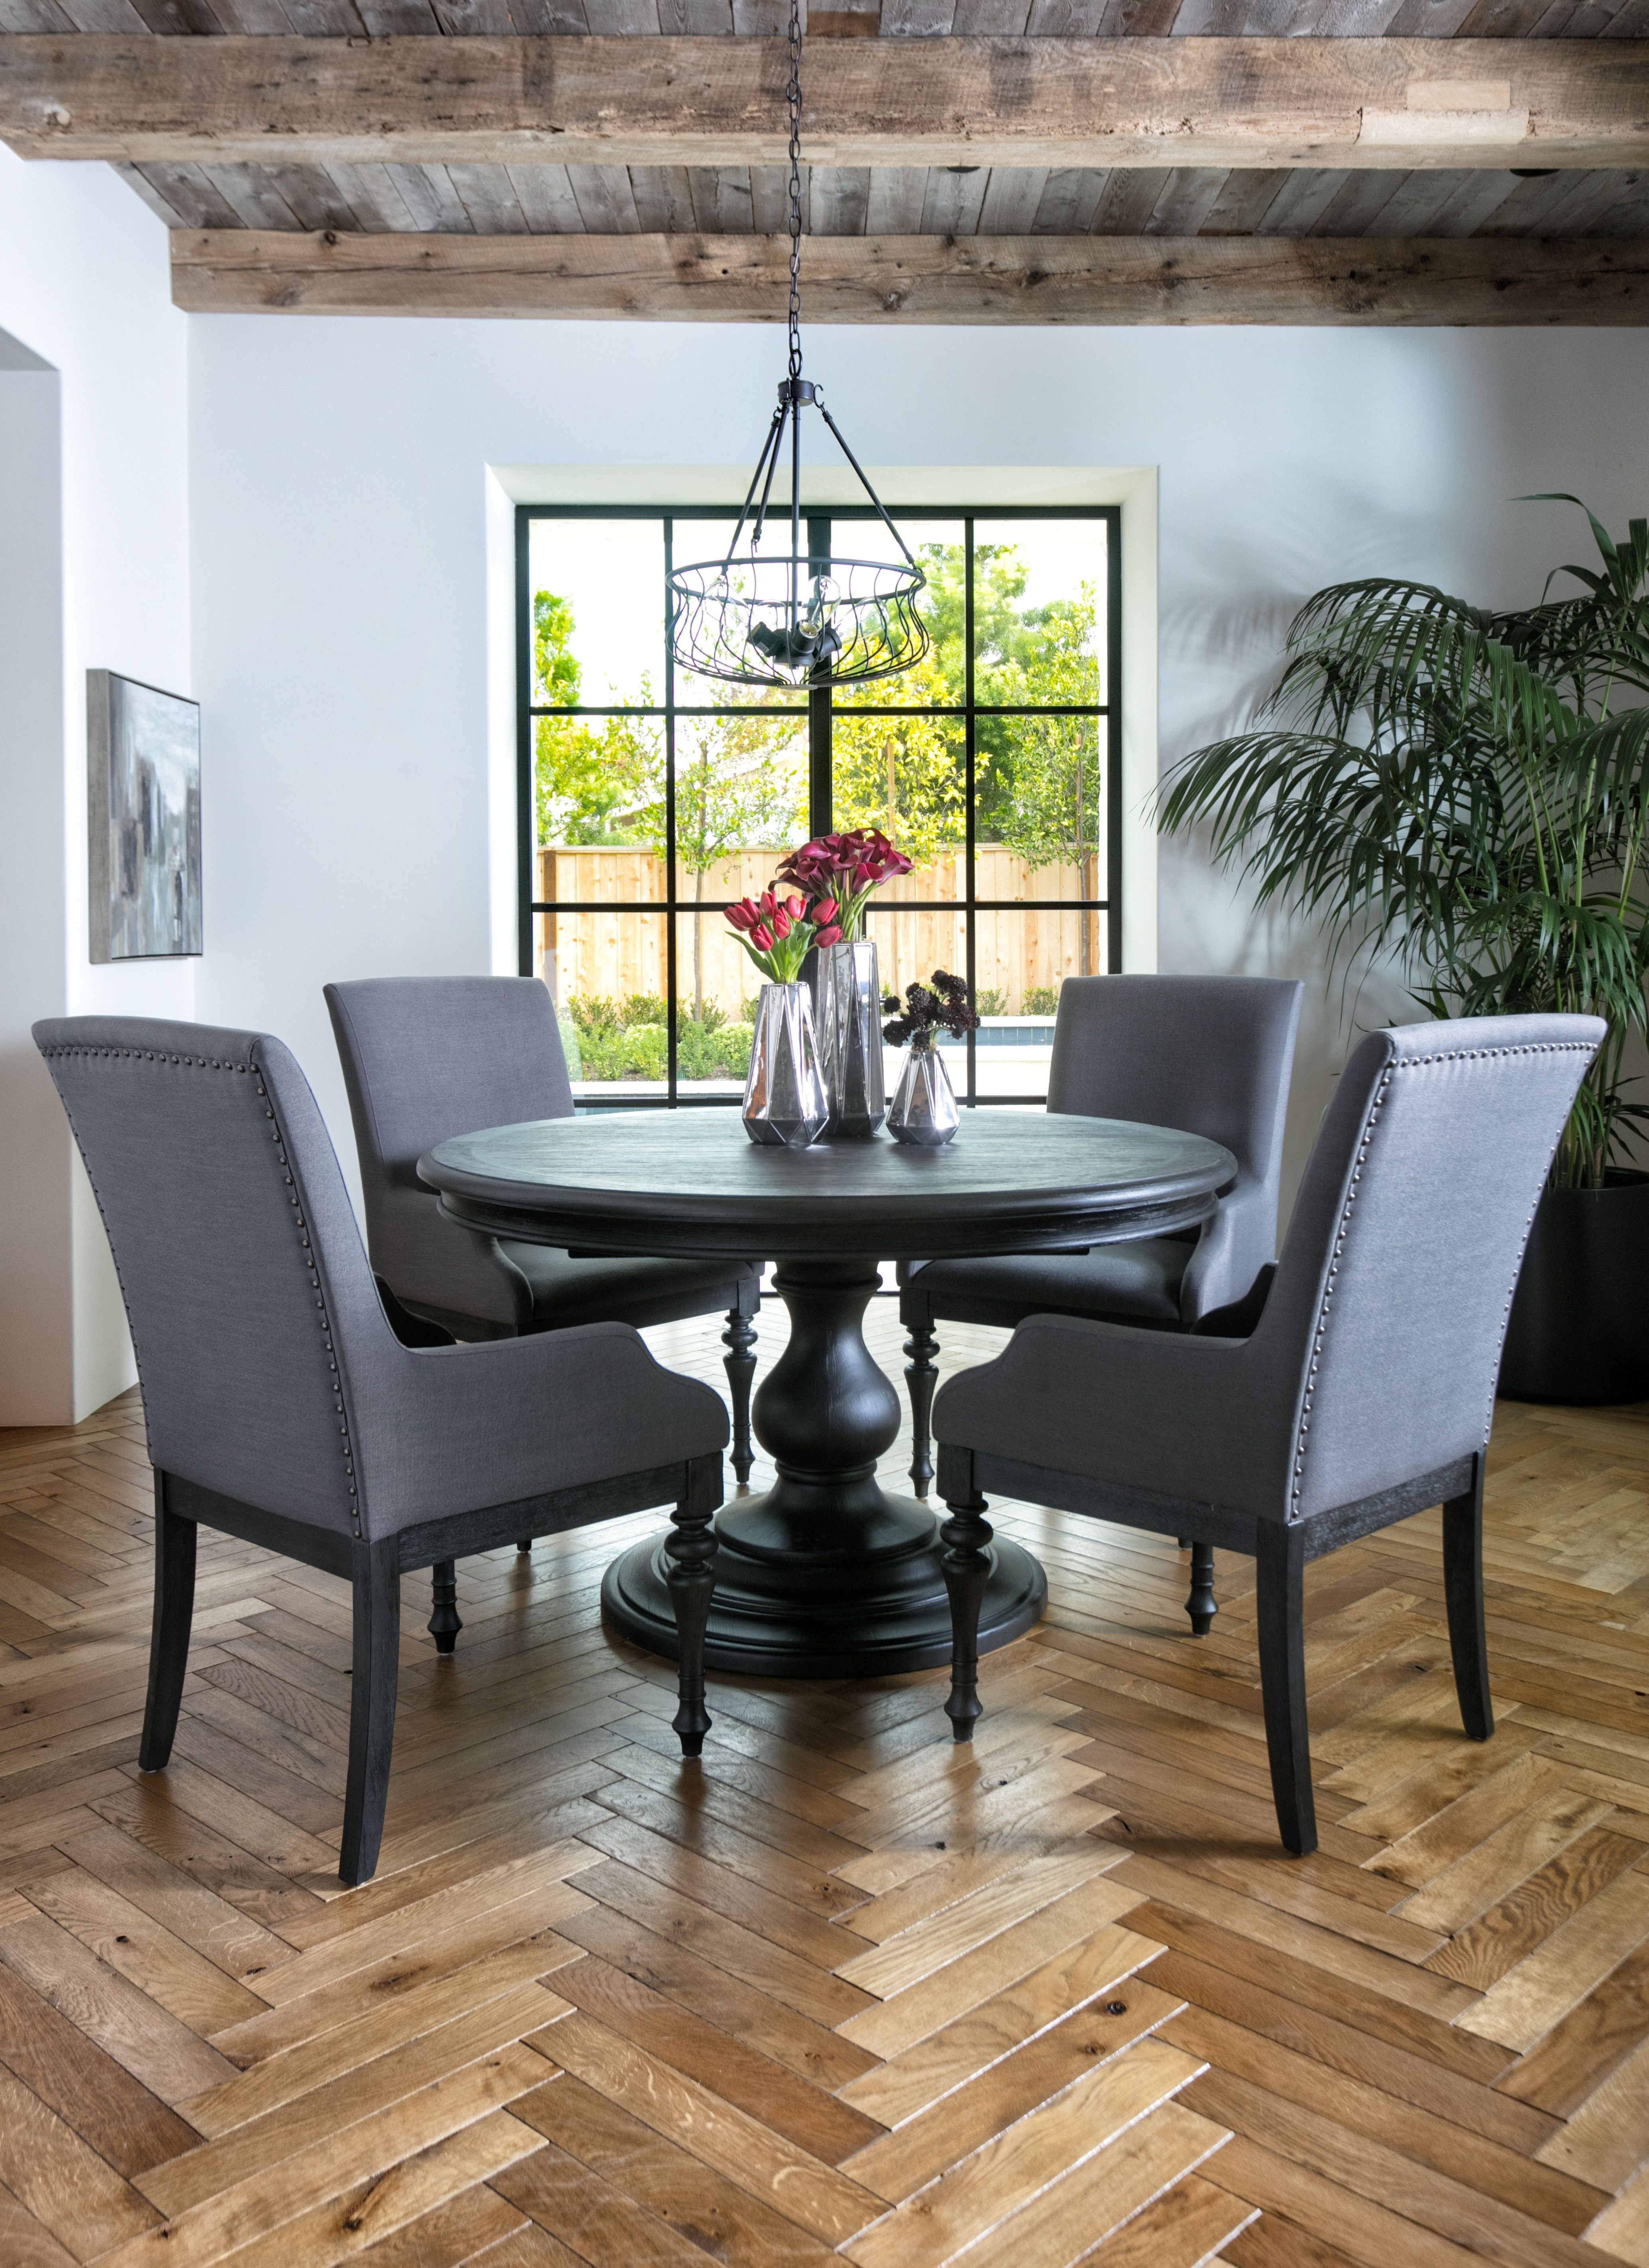 Caira Black 5 Piece Round Dining Set With Diamond Back Side Chairs Inside 2018 Caira Black 7 Piece Dining Sets With Upholstered Side Chairs (View 2 of 25)